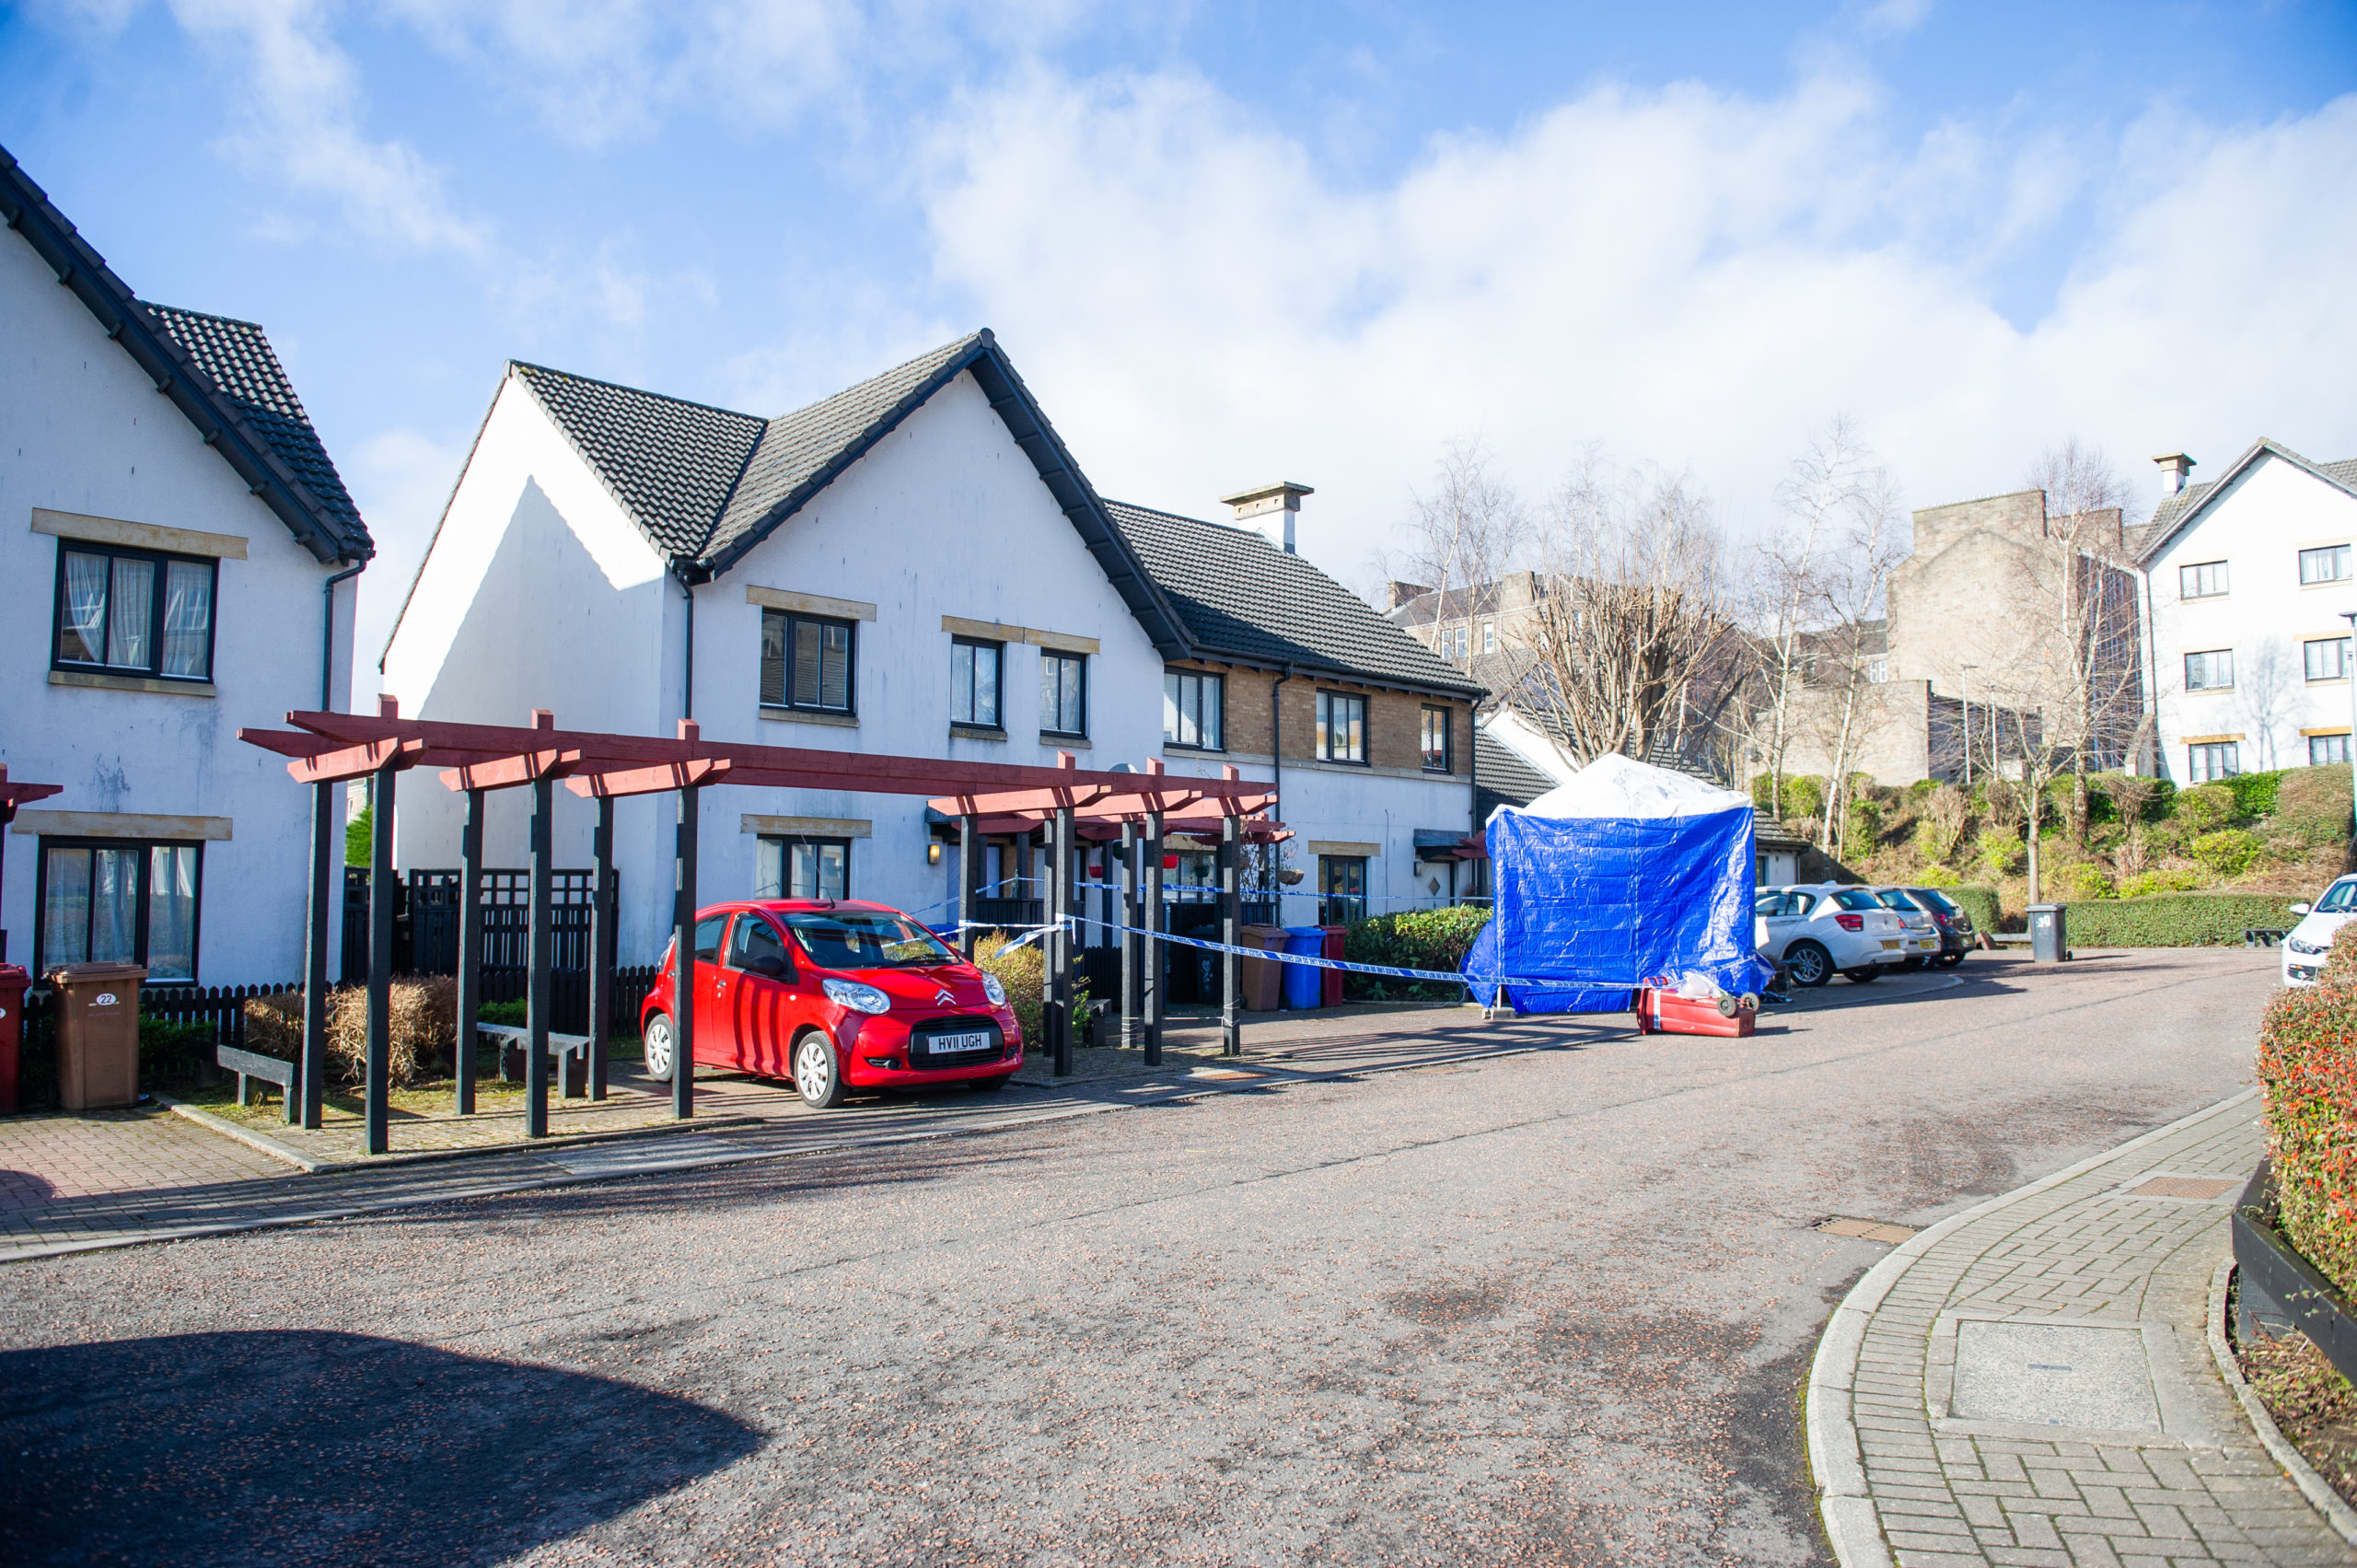 The scene at Benvie Gardens, following the incident.